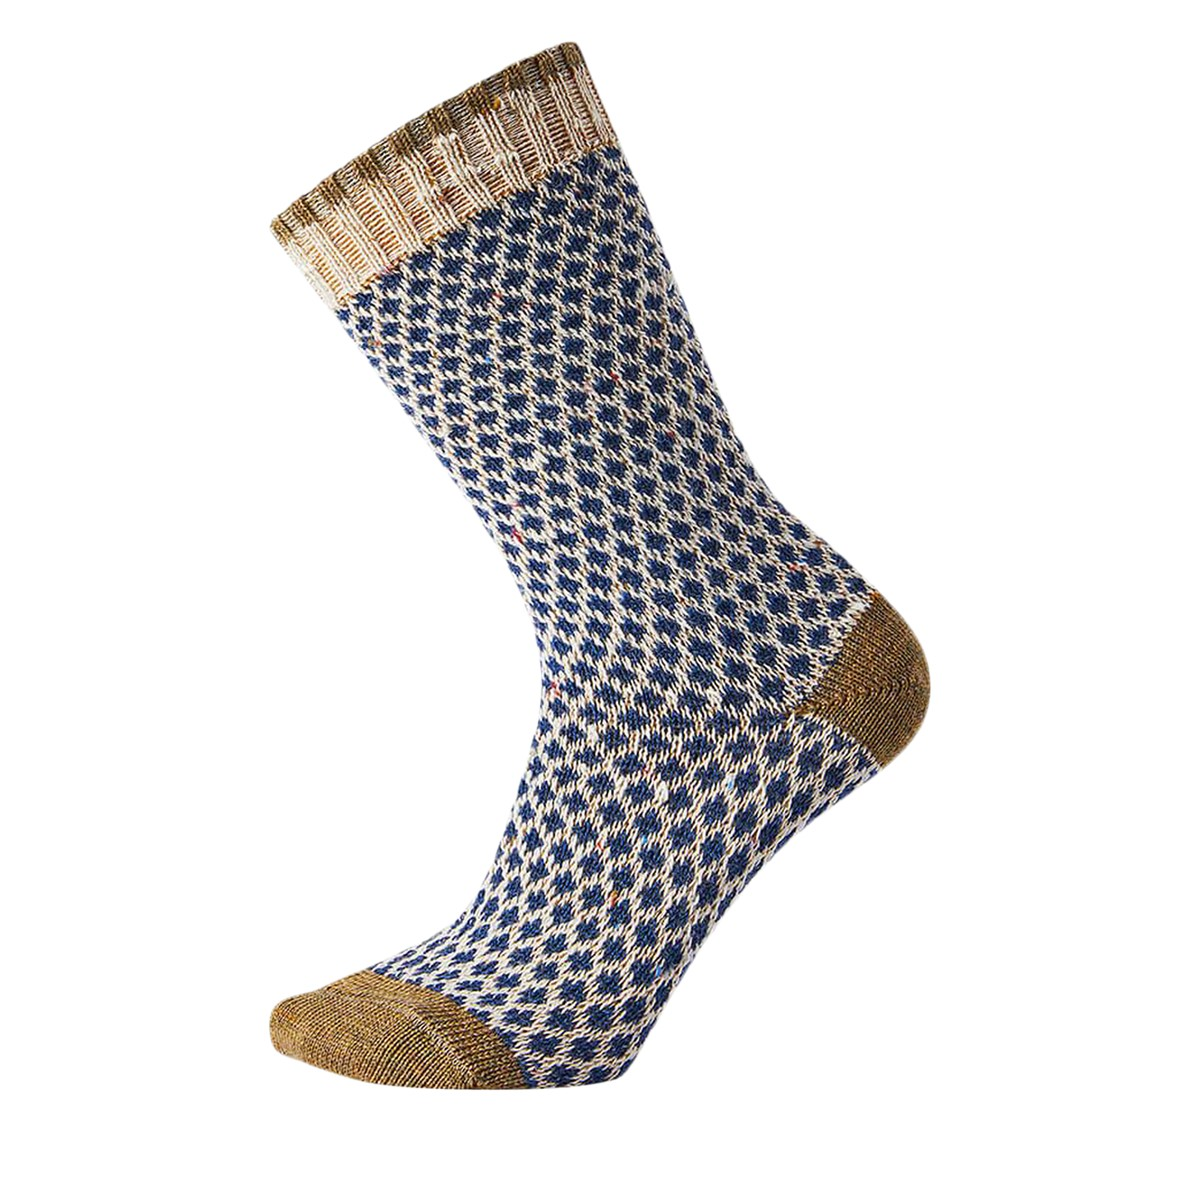 Women's Popcorn Polka Dot Crew Socks in Brown